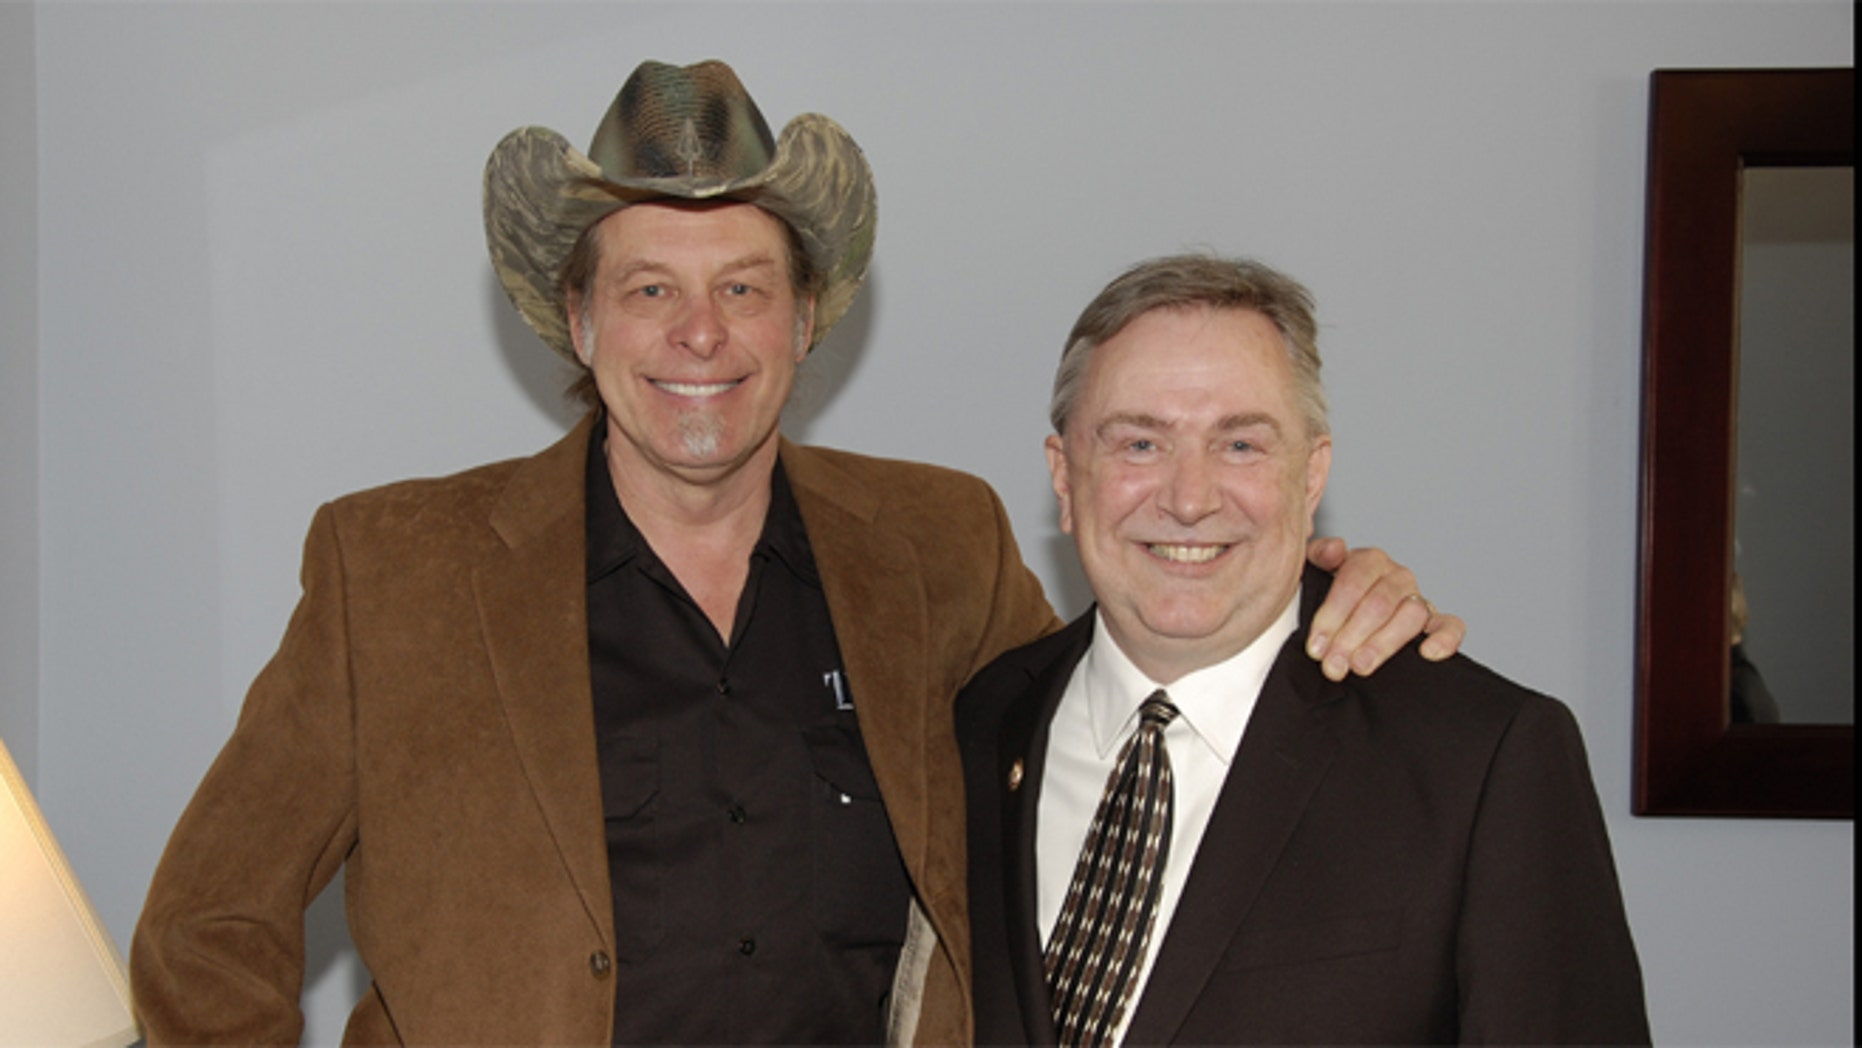 FILE: Feb. 12, 2013: Texas GOP Rep. Steve Stockman and rock star Ted Nugent,in Washington, D.C.